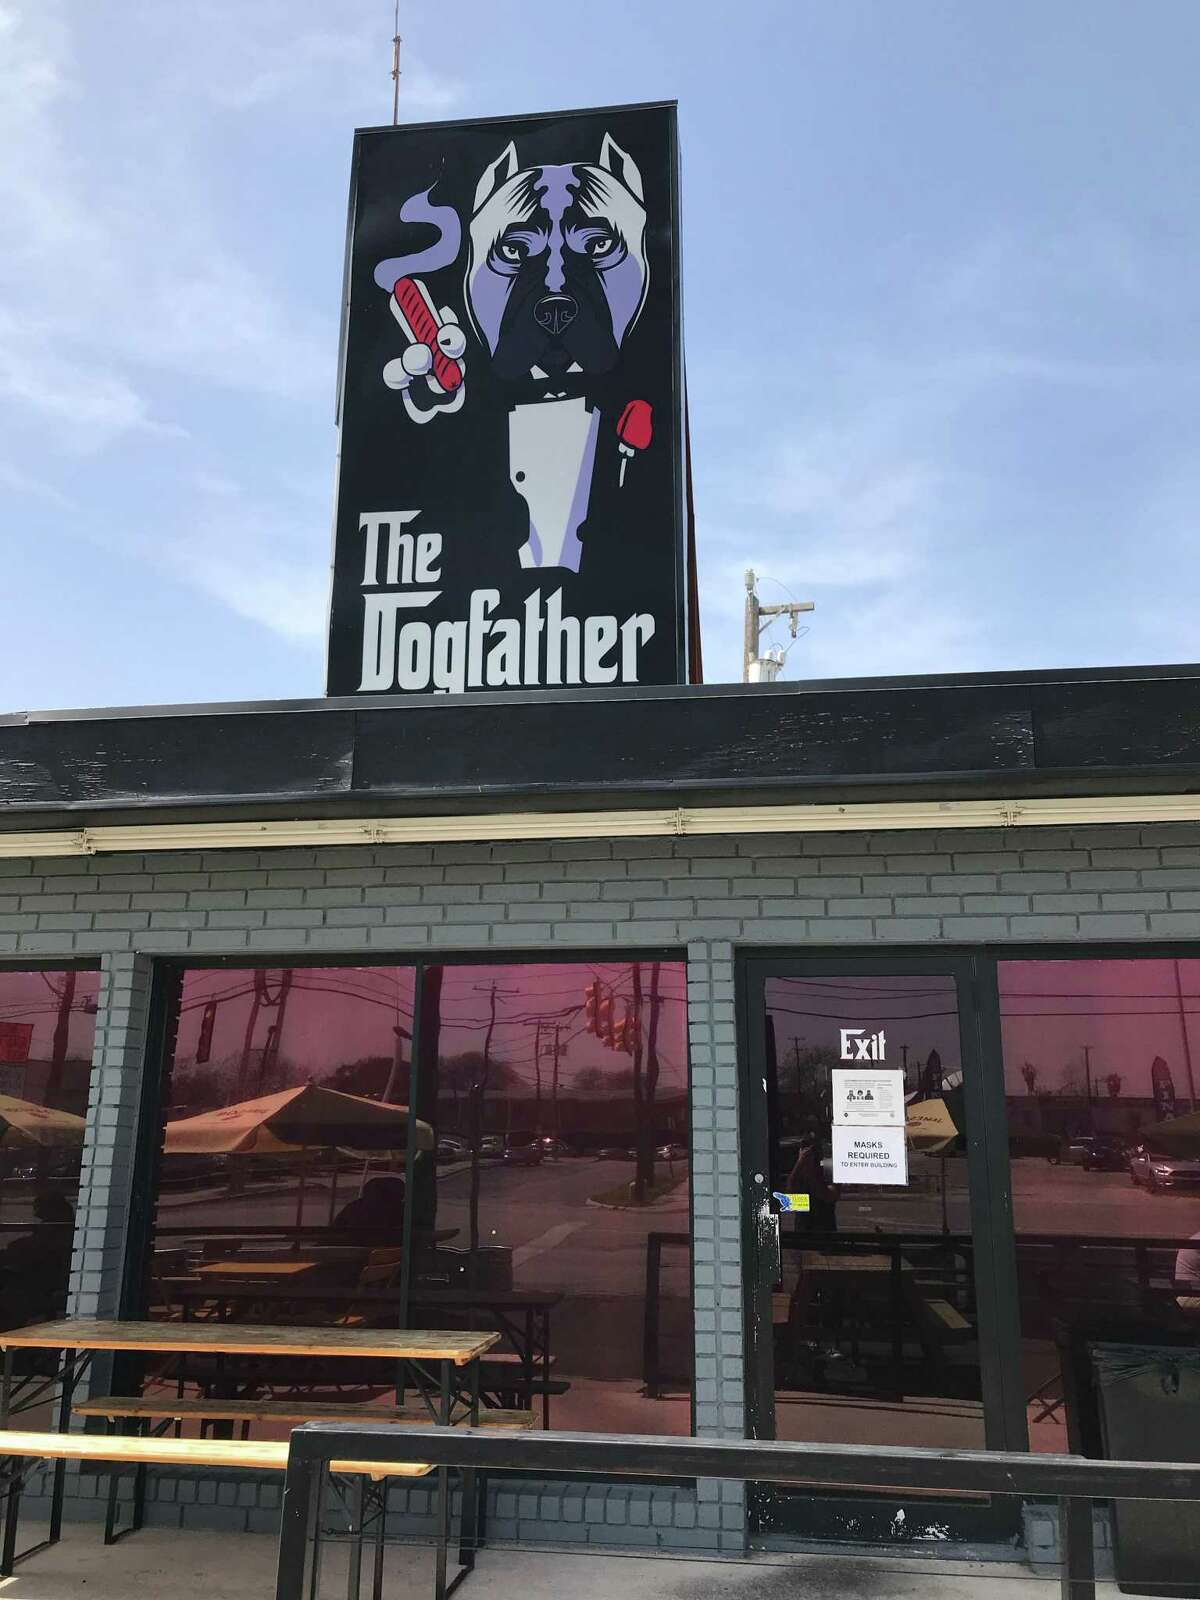 Hot dogs get a pure San Antonio treatment at The Dogfather, located at 6211 San Pedro Ave.